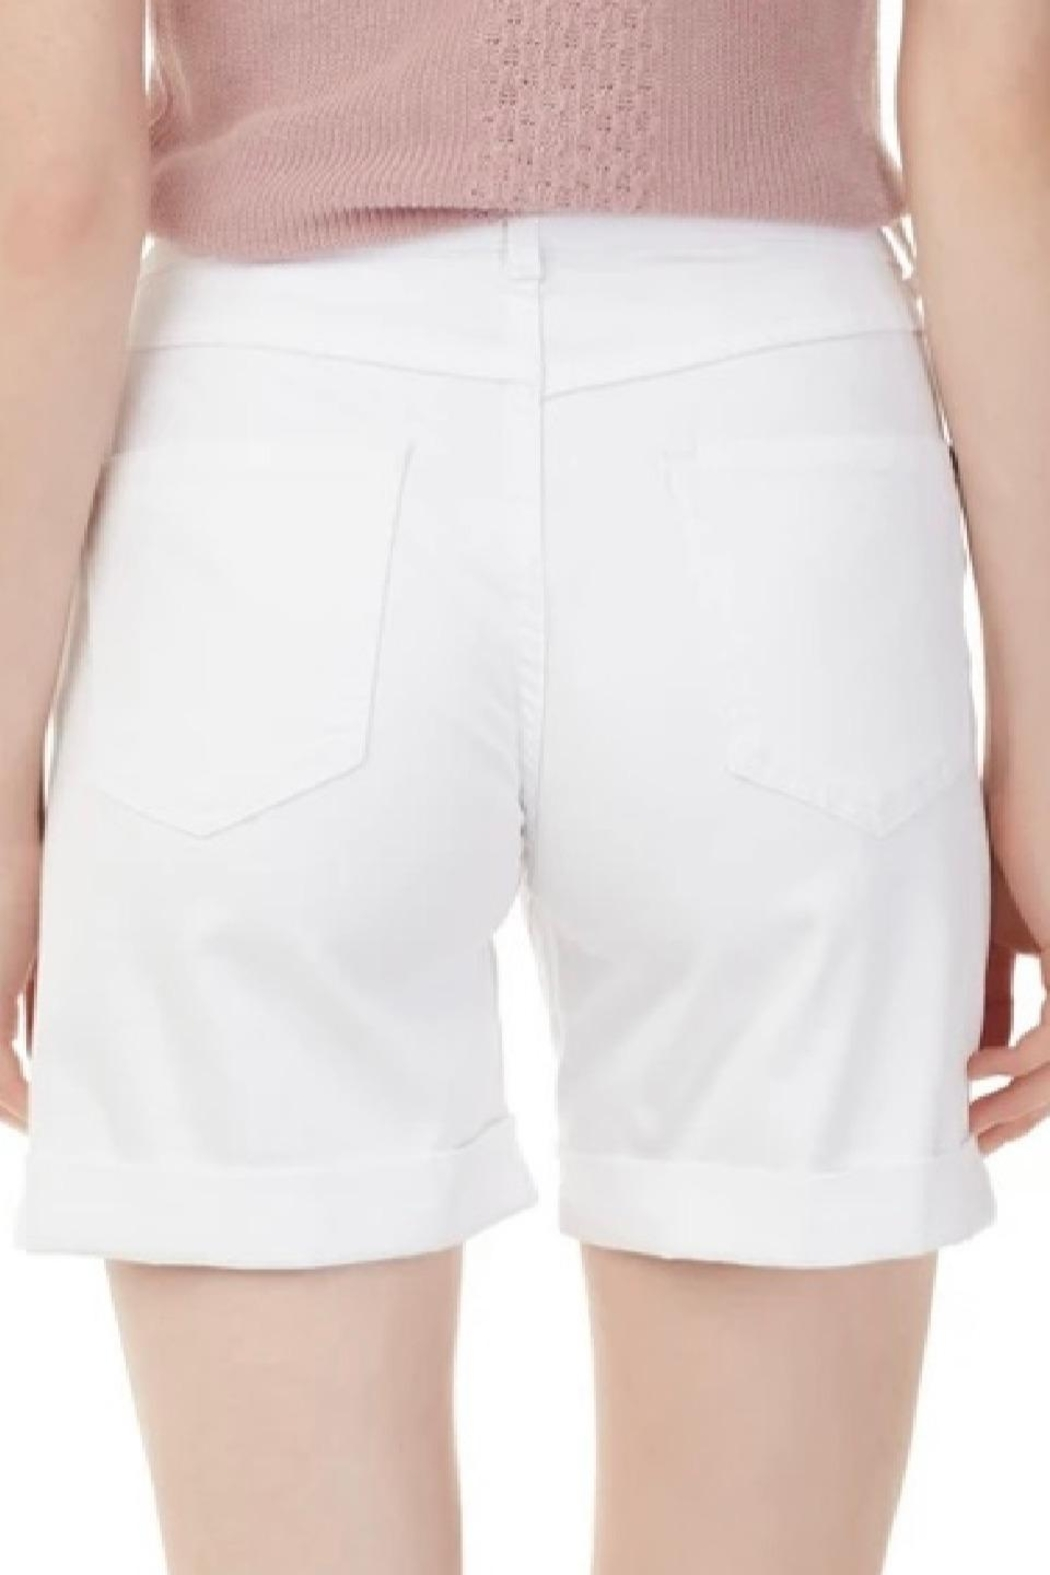 Charlie B. White Cuffed Shorts - Front Full Image